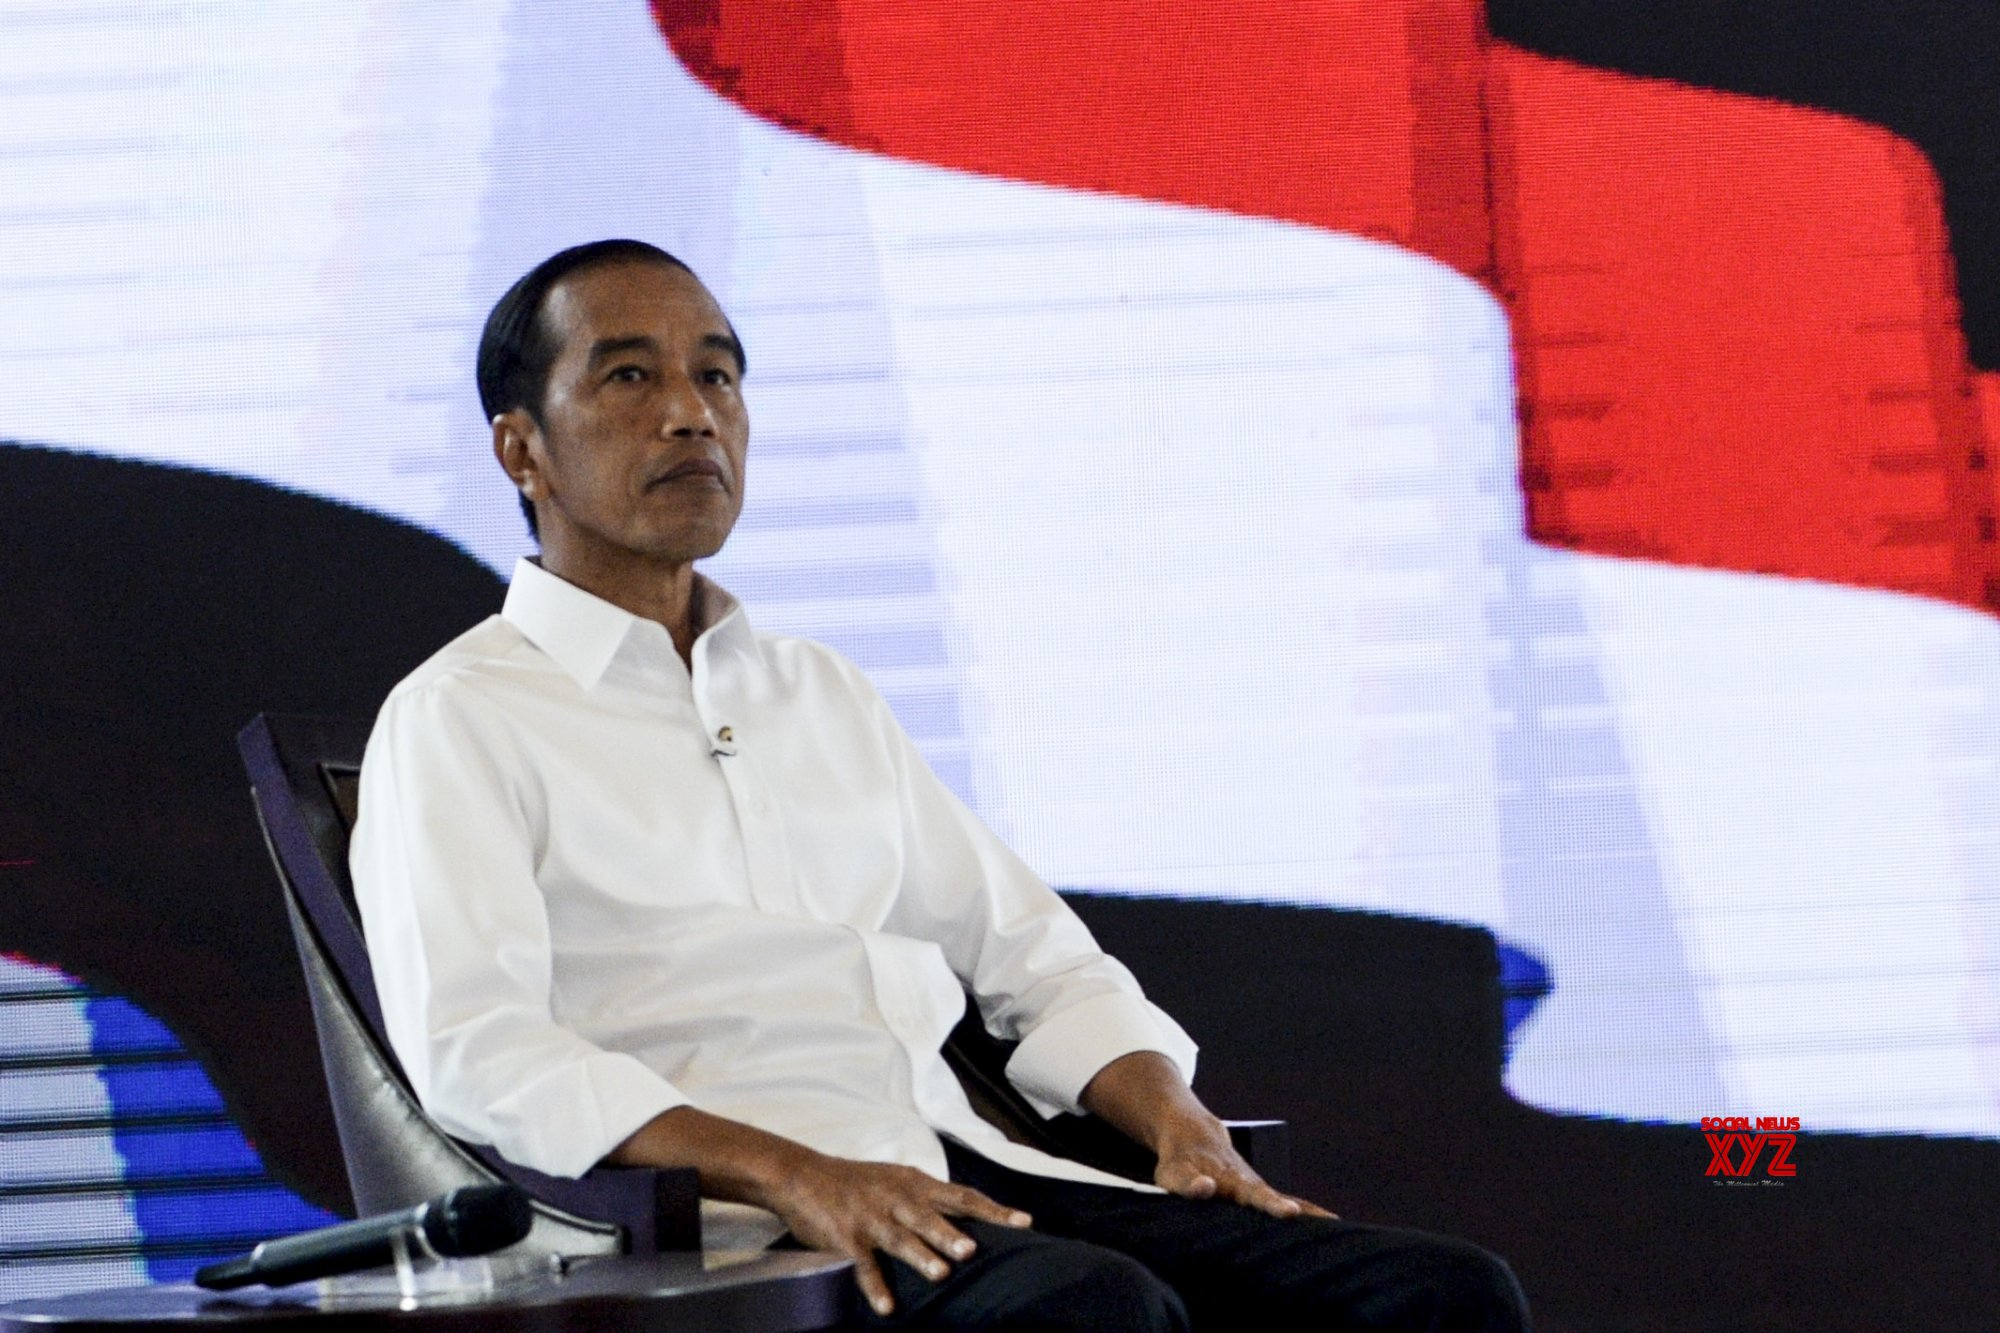 Indonesian President Widodo 'leading poll race'